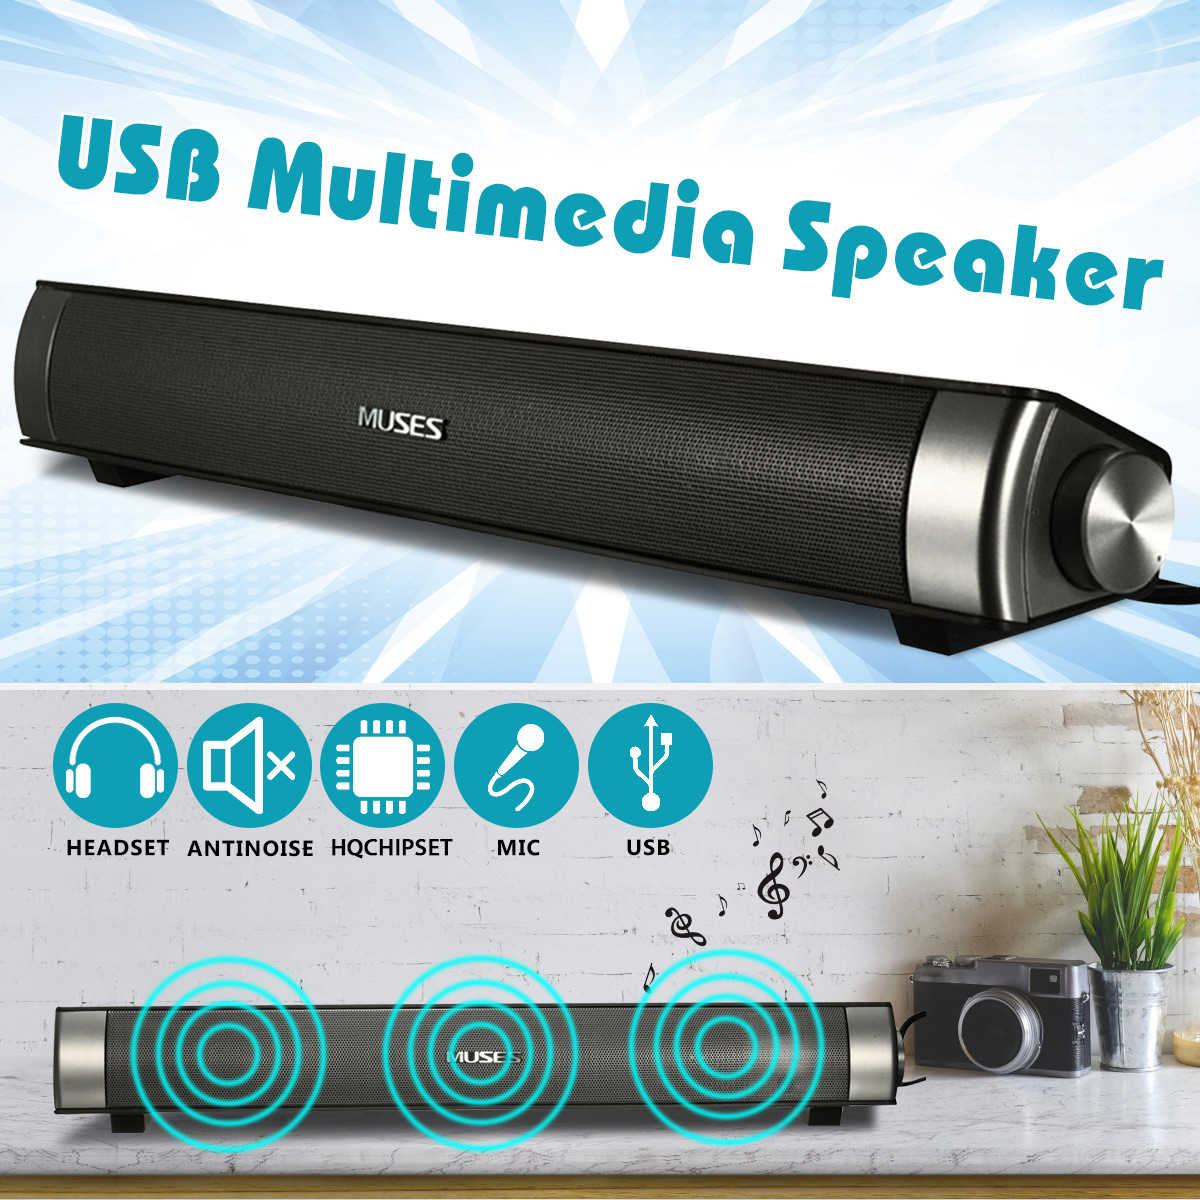 Kabel Soundbar Speaker Portable Speaker Amplifier Hi Fi Stereo Suara Bar dengan USB AUX Mikrofon untuk Komputer PC